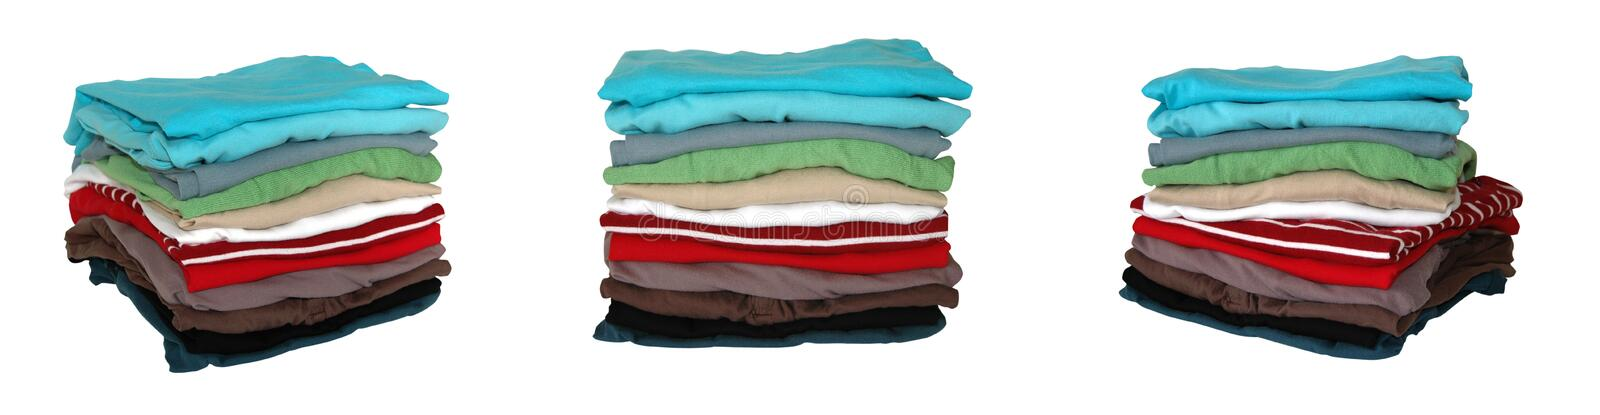 Folded Clothes Stock Image